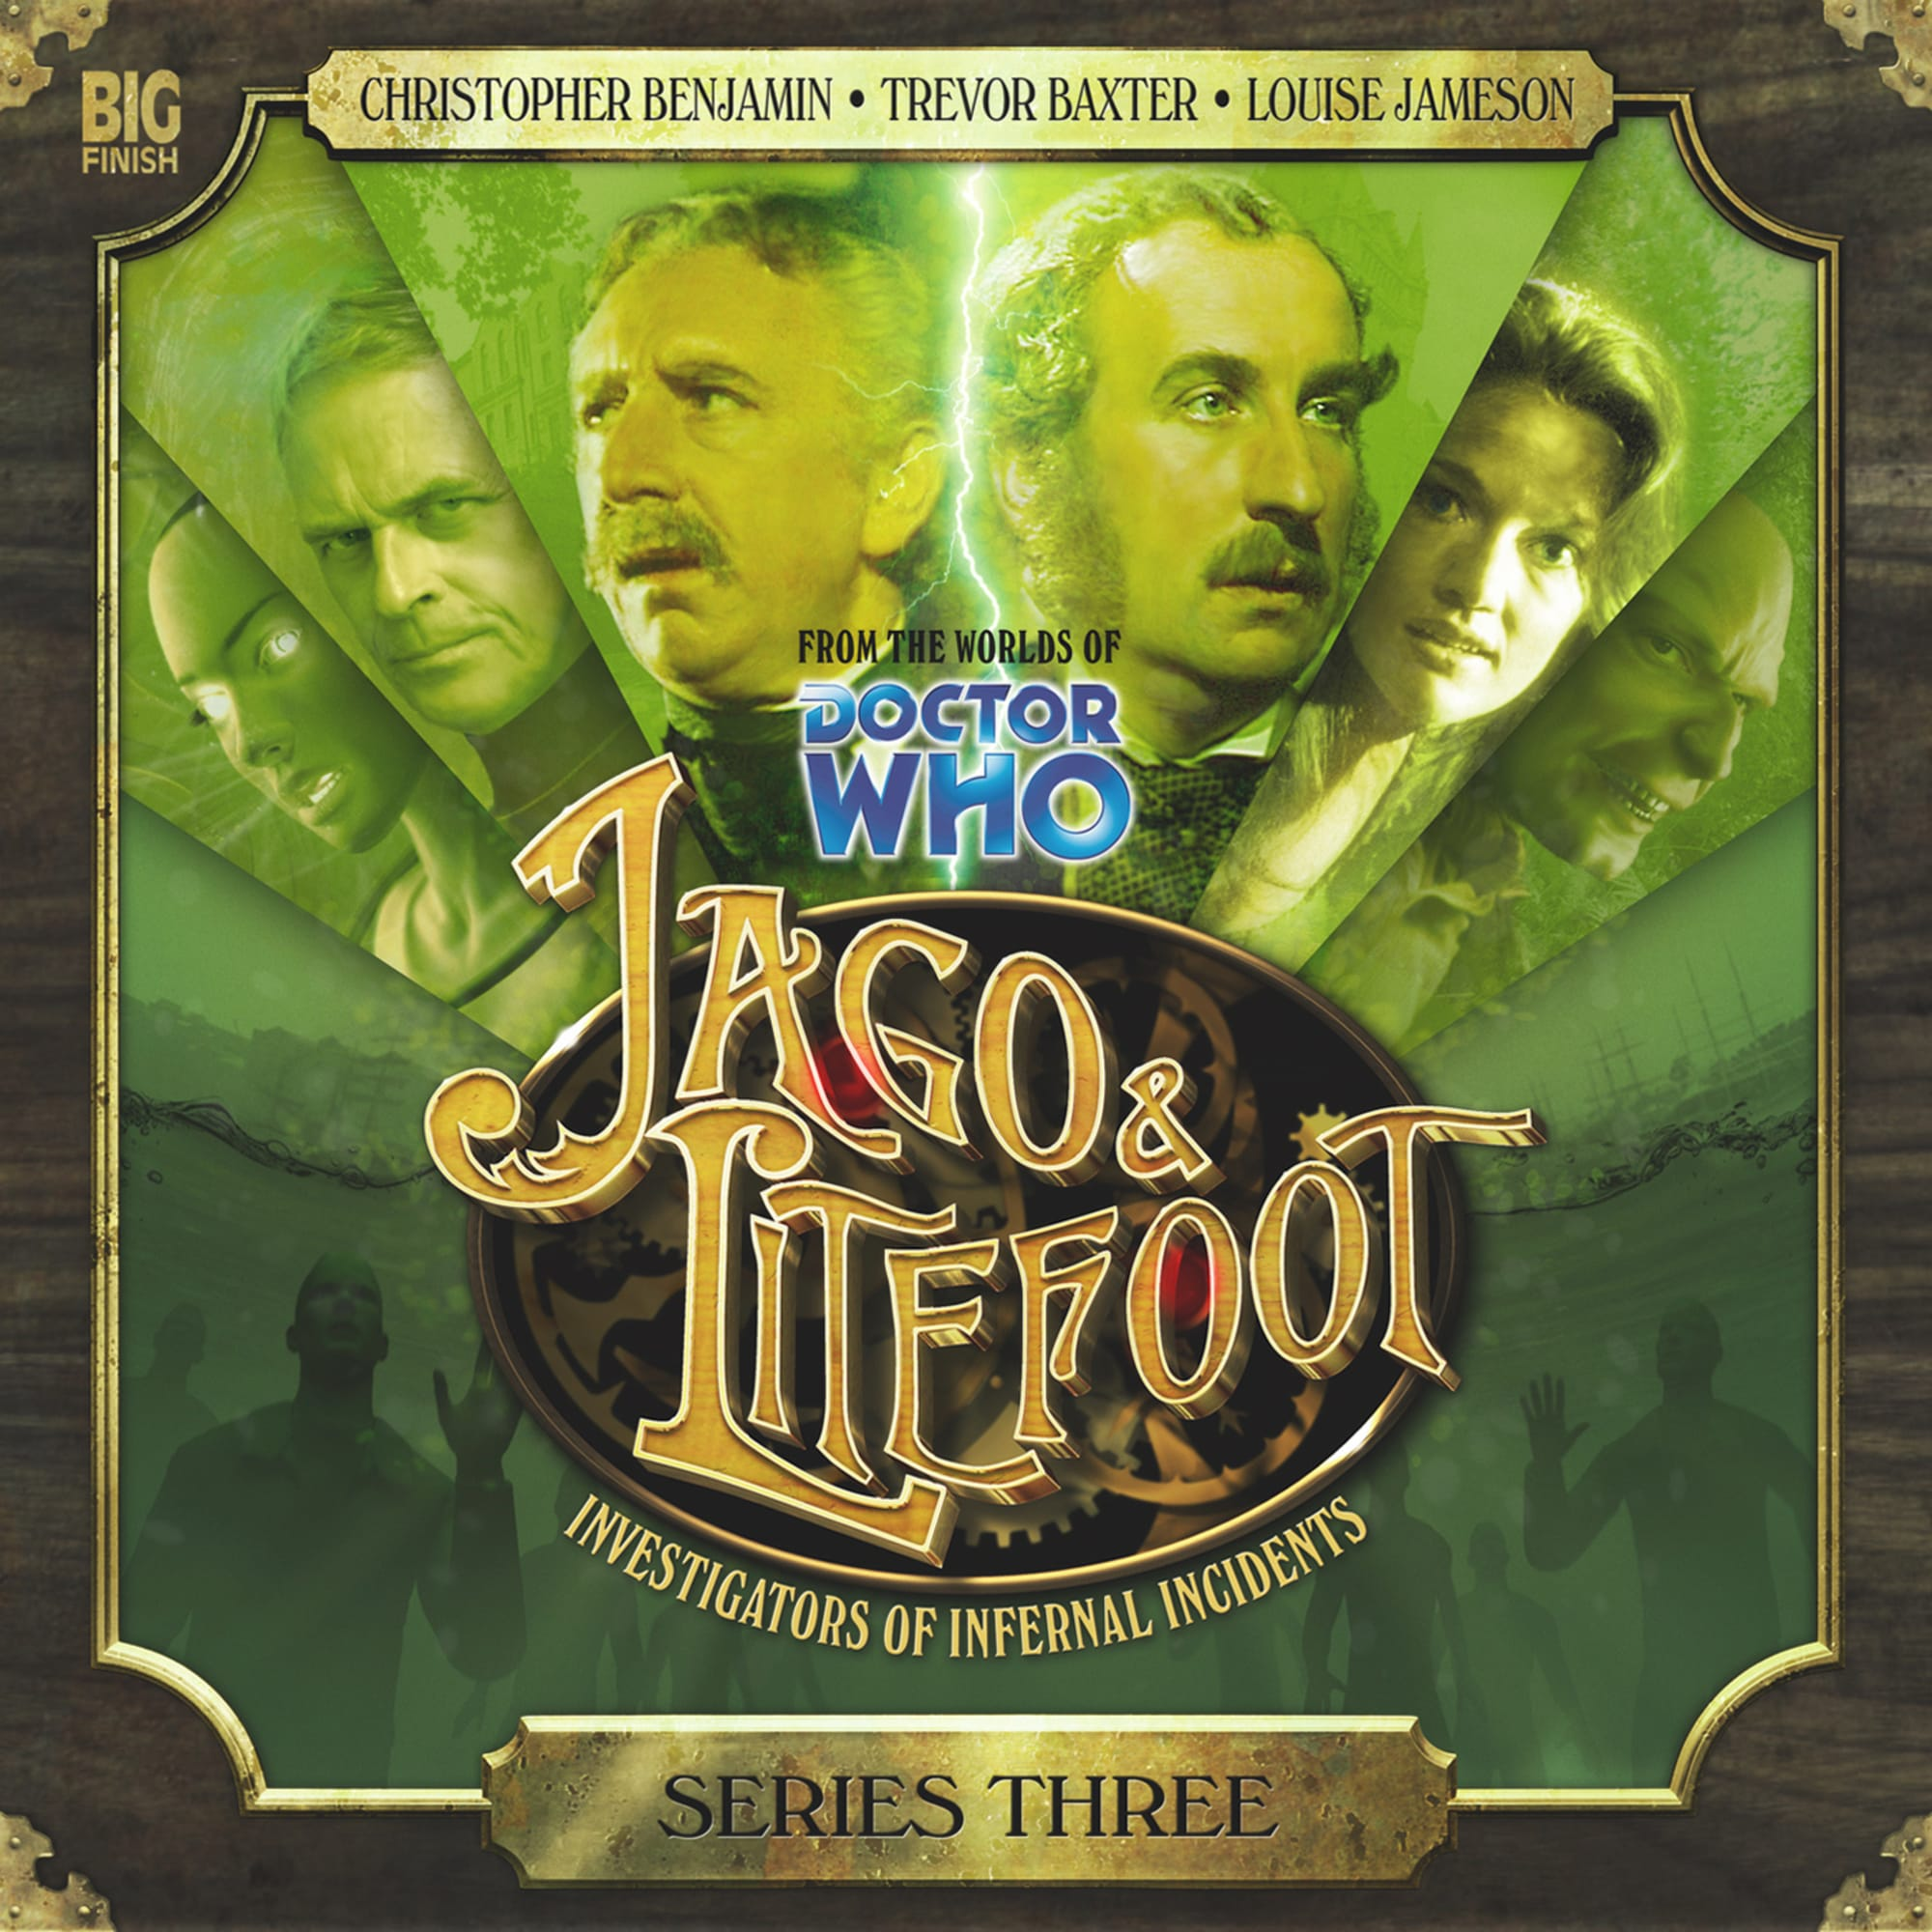 Doctor Who review: Jago & Litefoot have to save the world Chronoclasm